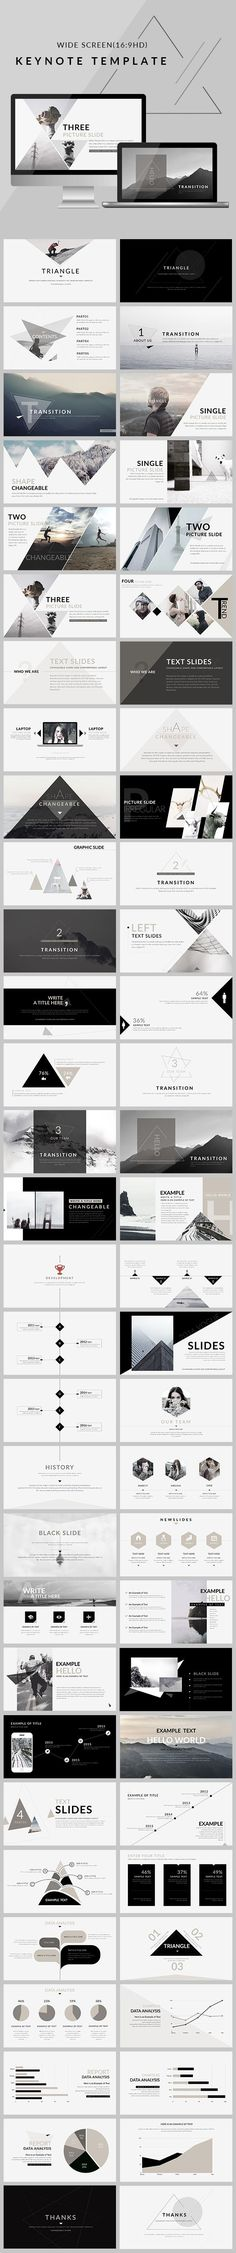 Triangle - Clean trend Keynote Template - Keynote Creative Presentation Template by Ppt Design, Layout Design, Visual Design, Logo Design, Design Agency, Creative Design, Layout Inspiration, Graphic Design Inspiration, Interface Design